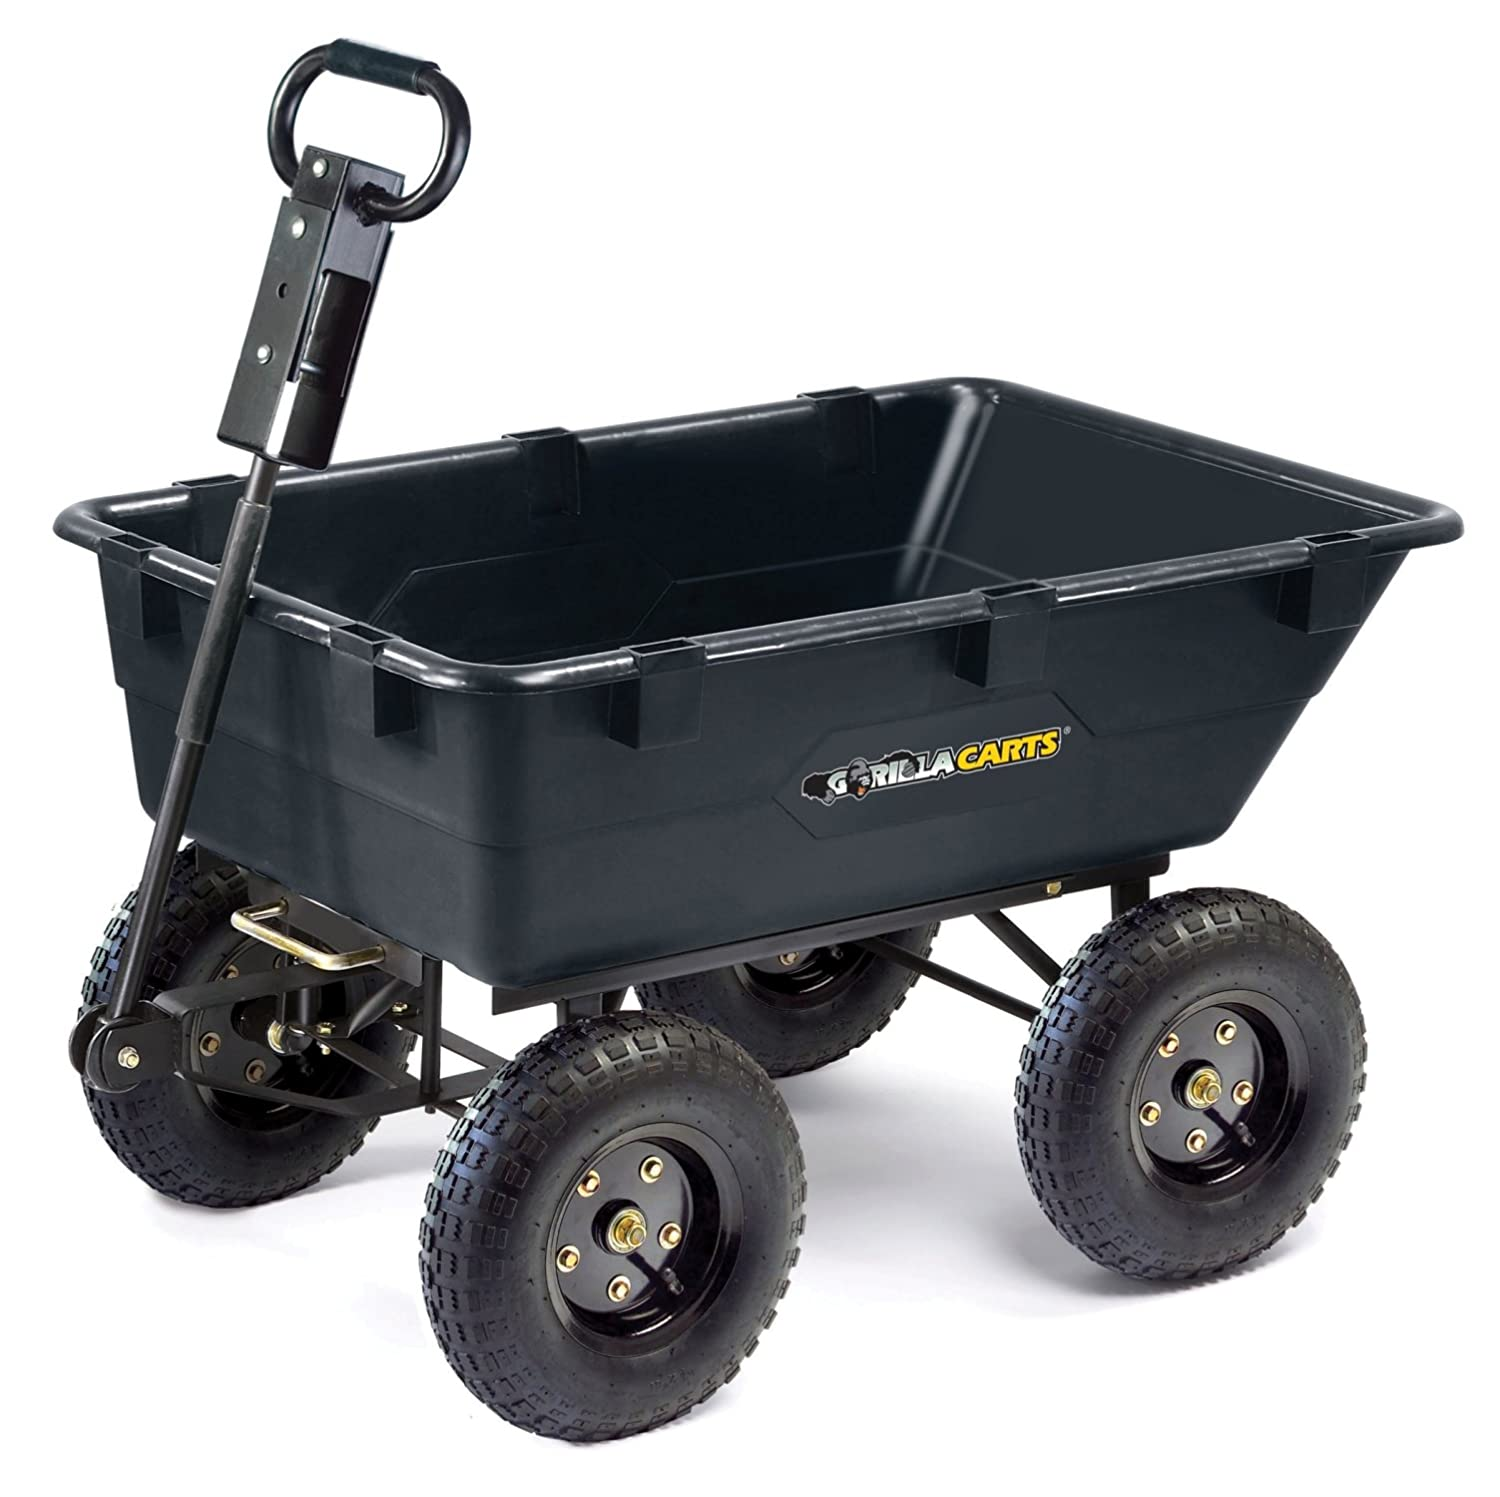 Gorilla cart gor866d - 1200 Lbs Wheelbarrow